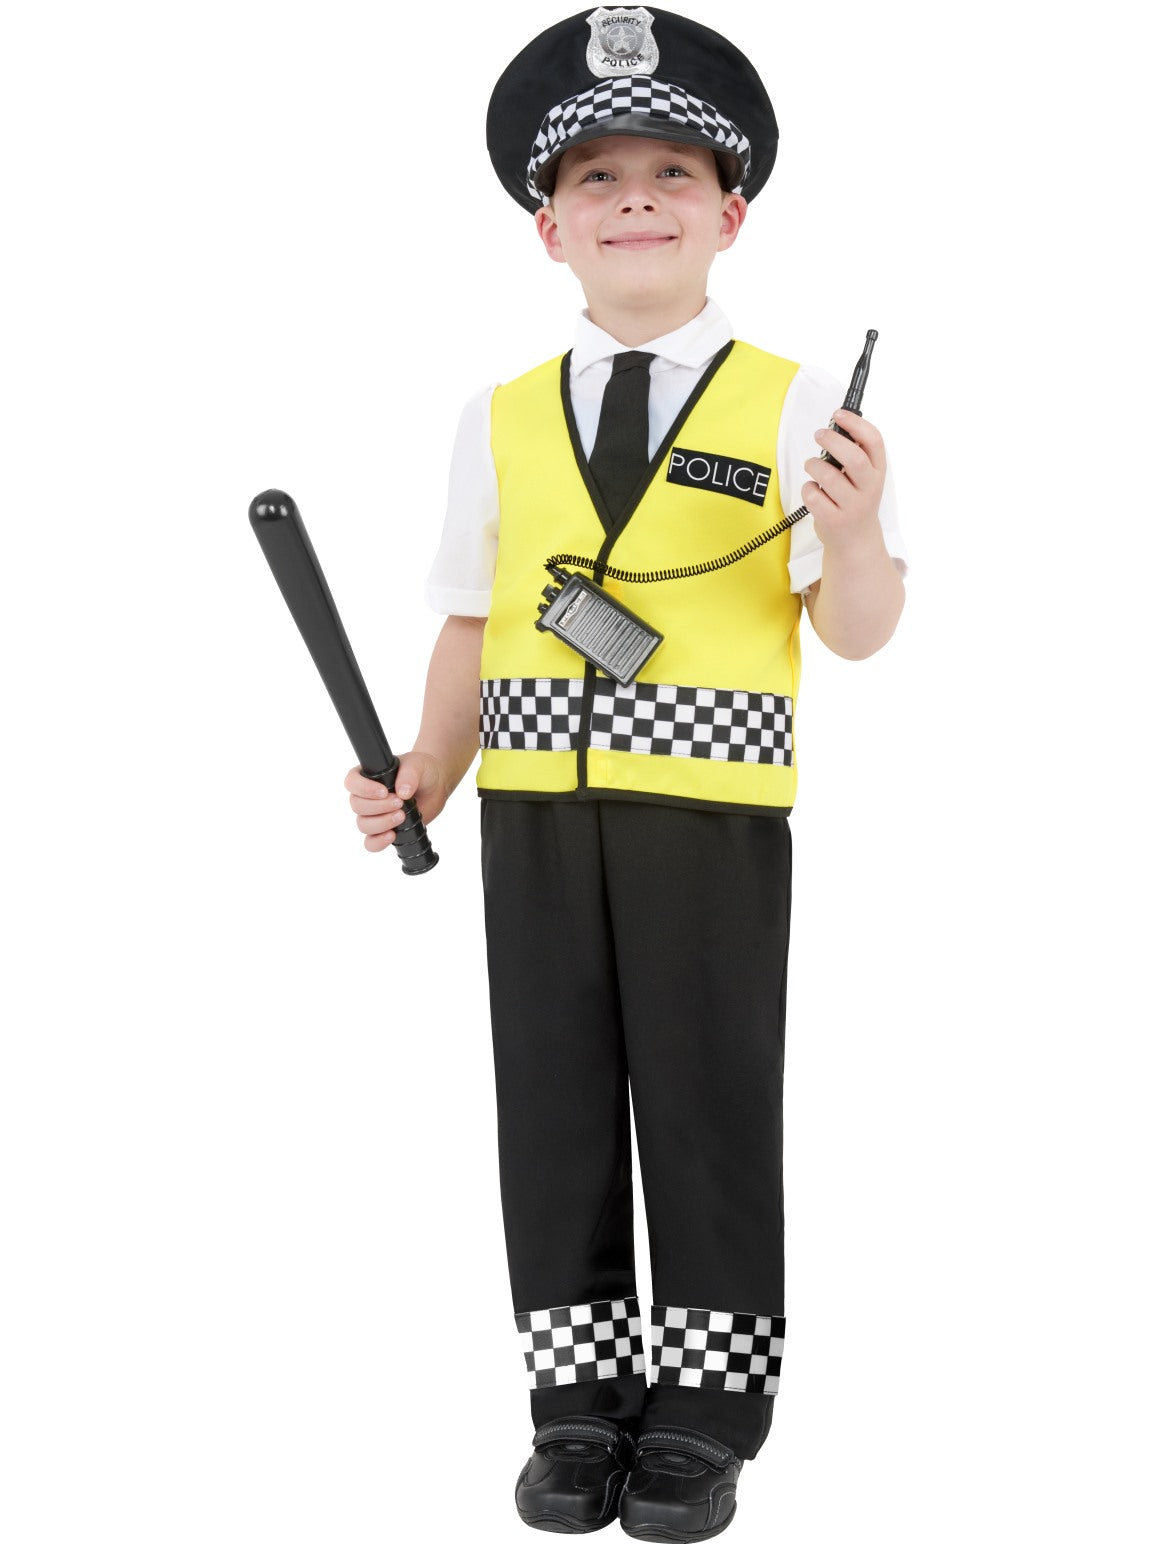 Boys Costume - Police Boy